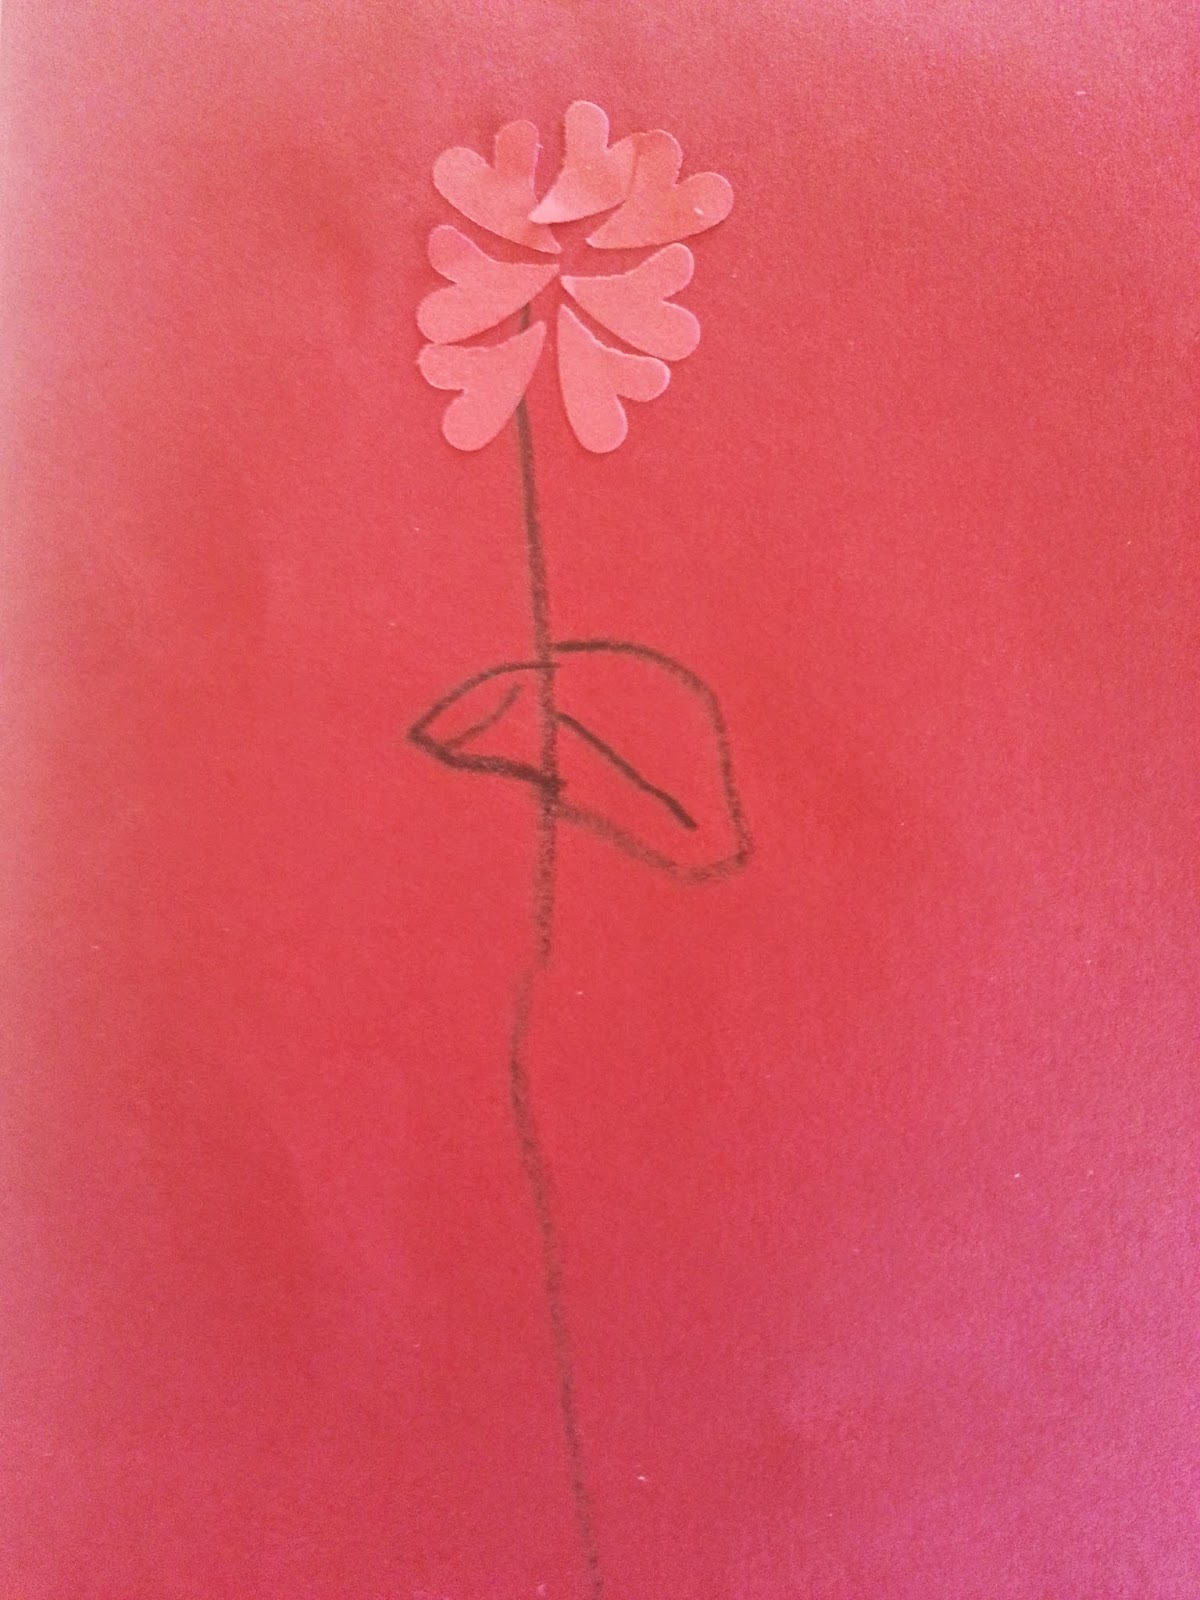 Handmade Mother's Day Card Pink Love Heart Petals on a single stem and red background